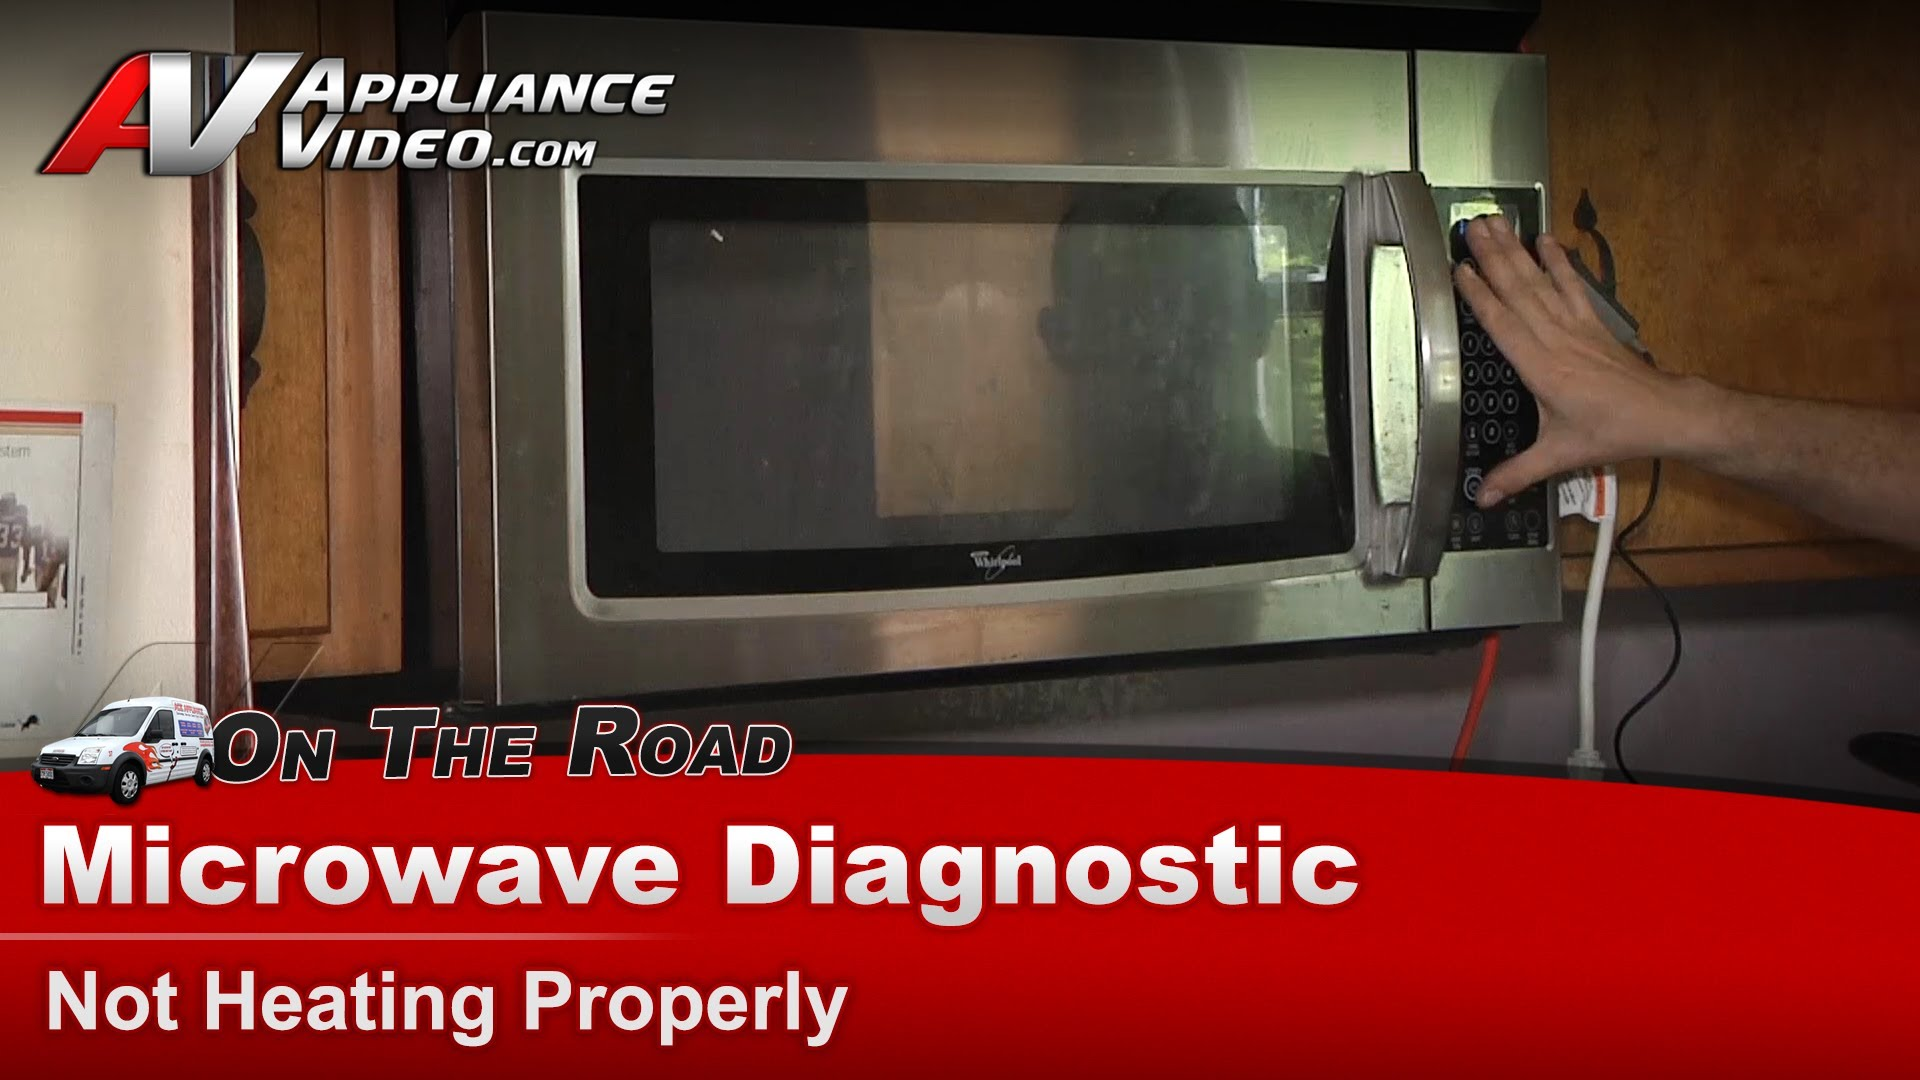 Whirlpool Wmh1162xvs 2 Microwave Diagnostic Not Heating